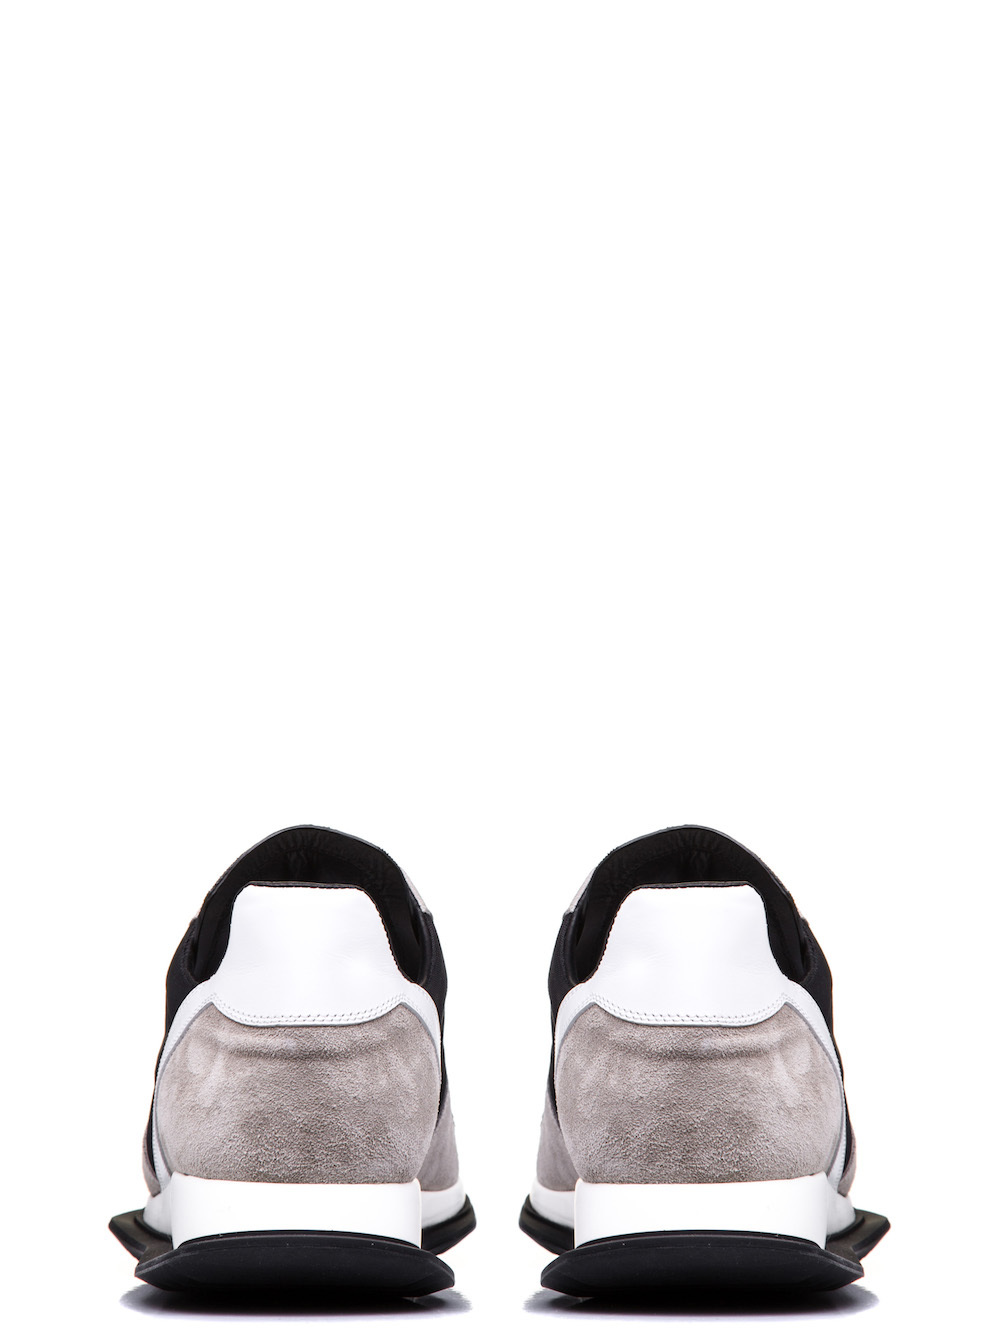 RICK OWENS NEW LACE-UP RUNNERS IN PEARL BEIGE AND BLACK HAVE